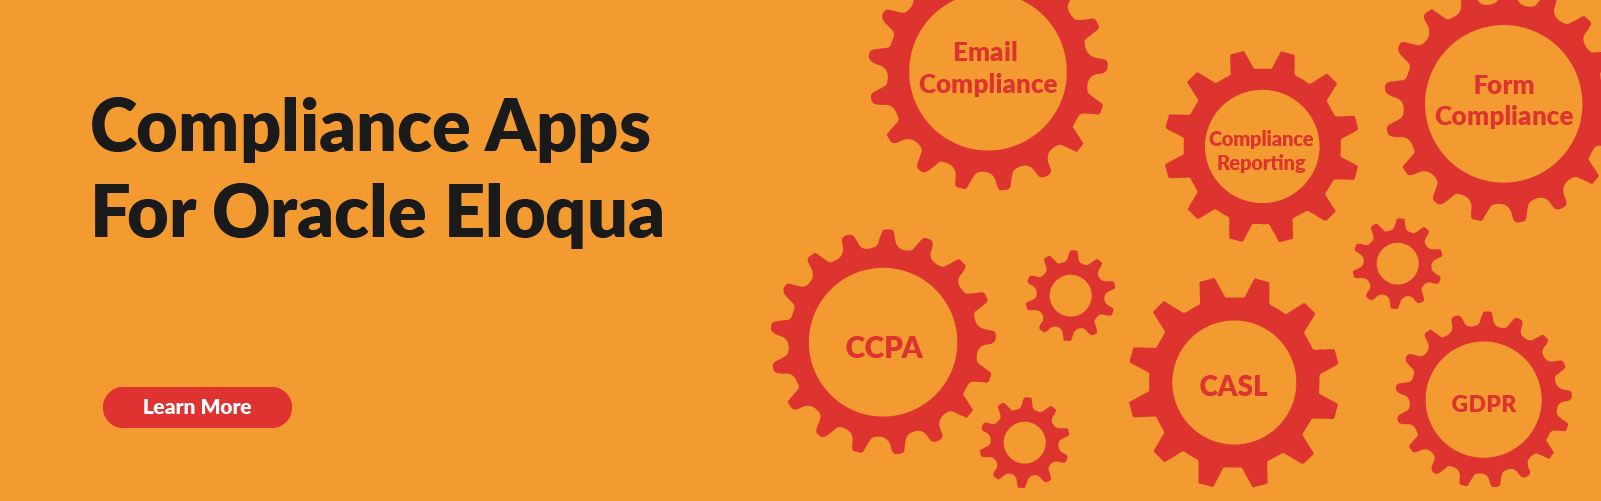 Compliance Apps for Oracle Eloqua